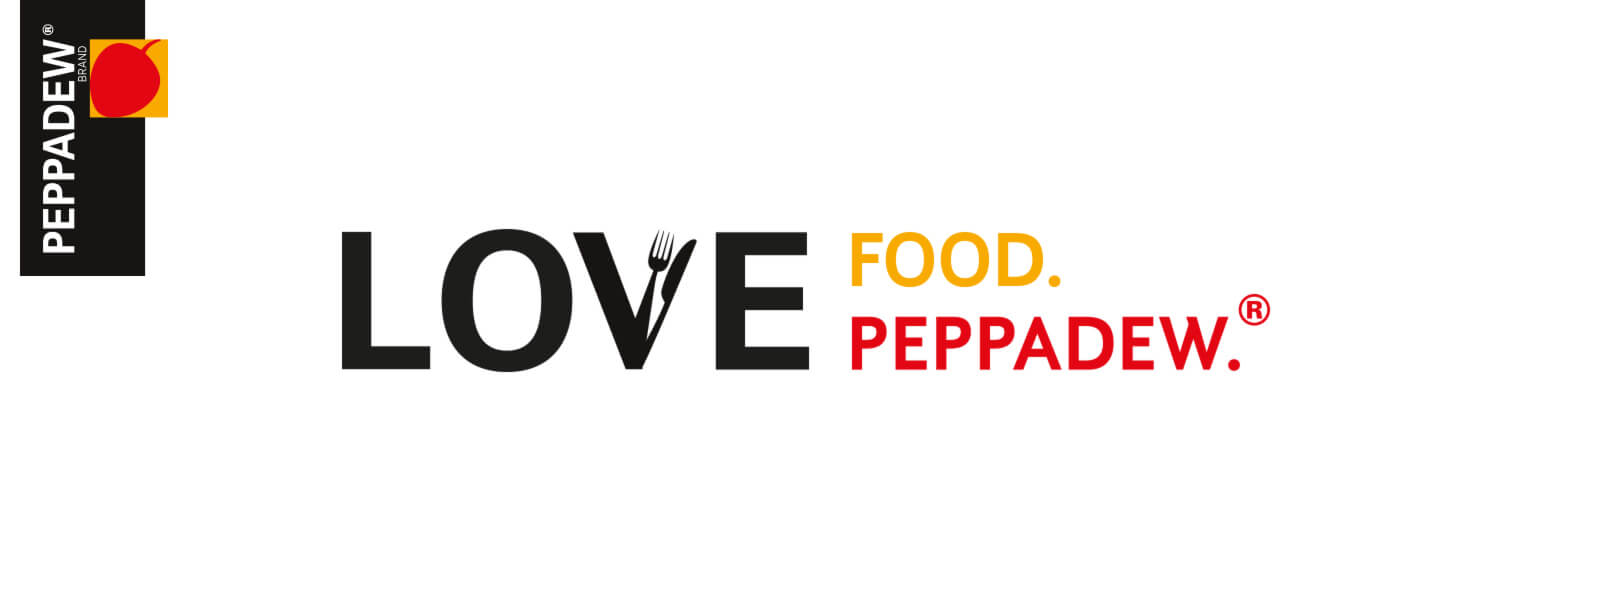 3 Home Banners Love Food With Logo 1610x600